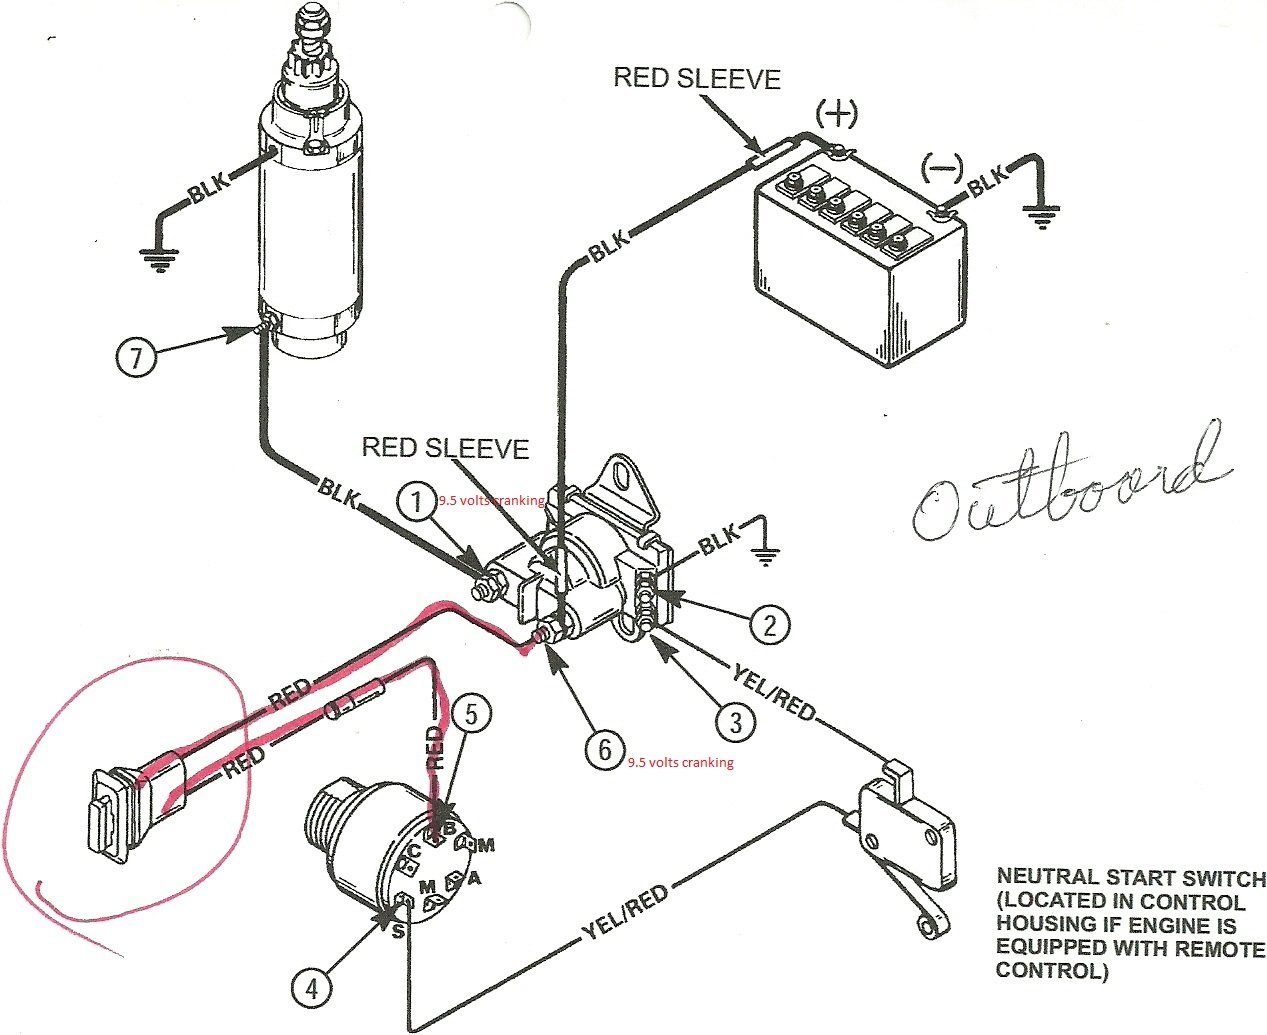 Wiring Diagram For Mercury 150 Xr2 Wiring Free Download Wiring – Bass Boat Wiring Diagram